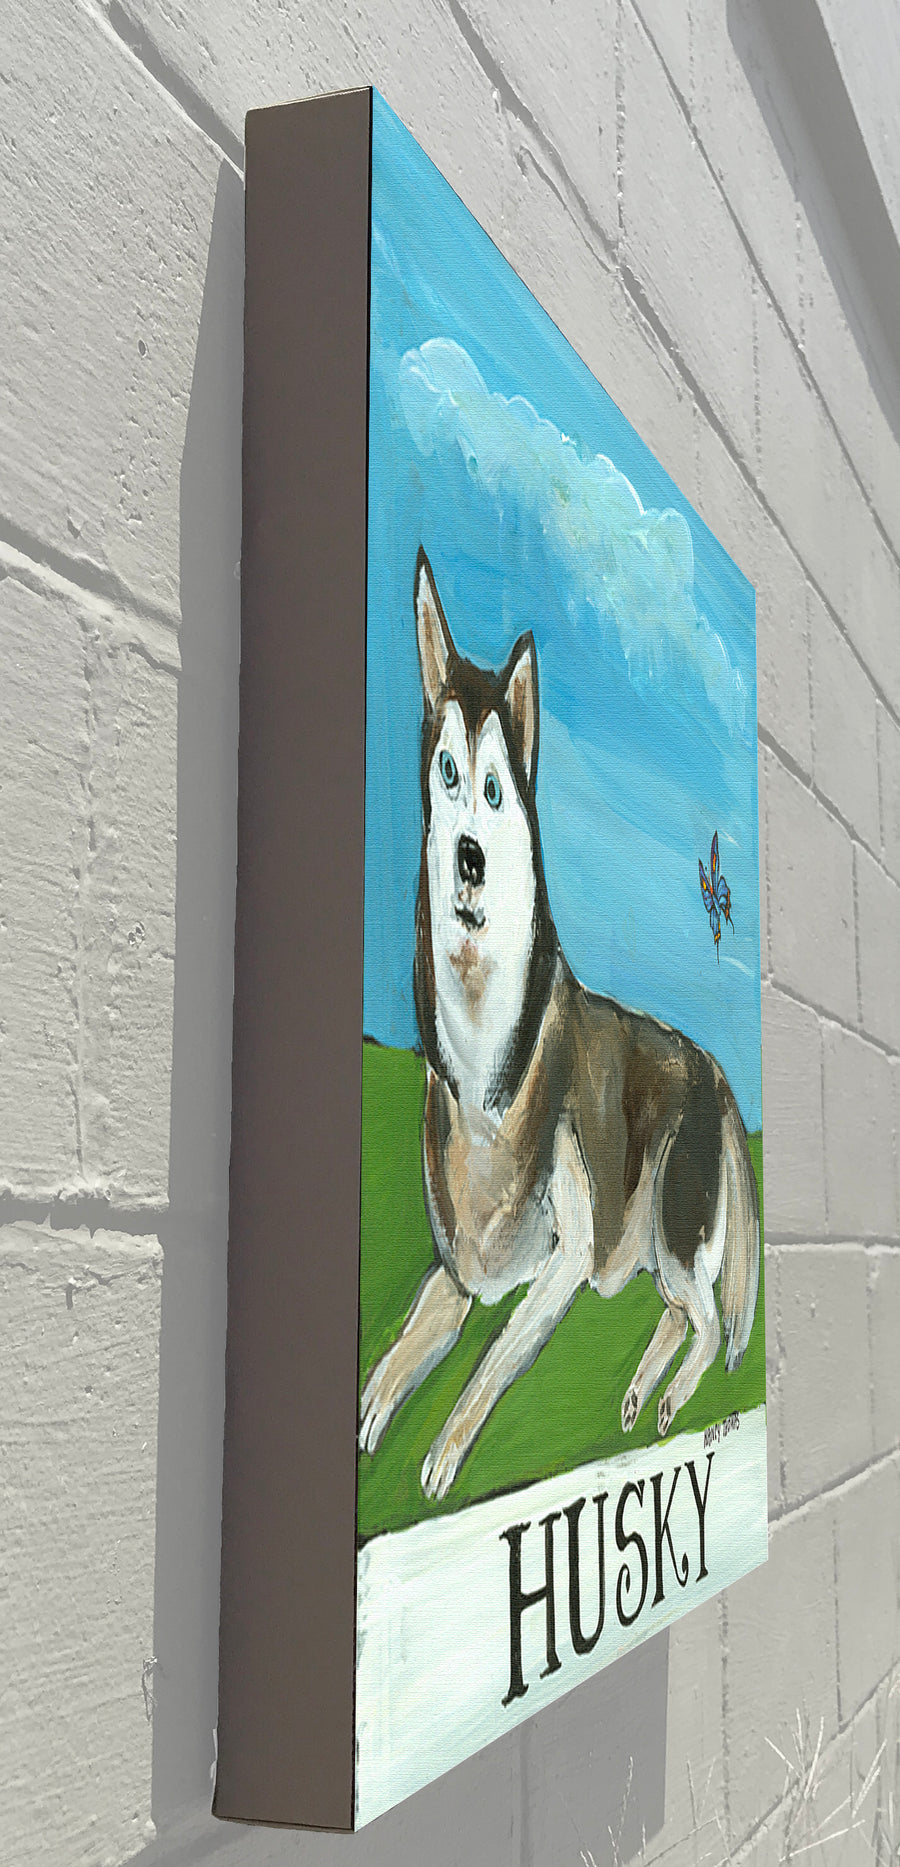 Gallery Grand - Doggie - Husky